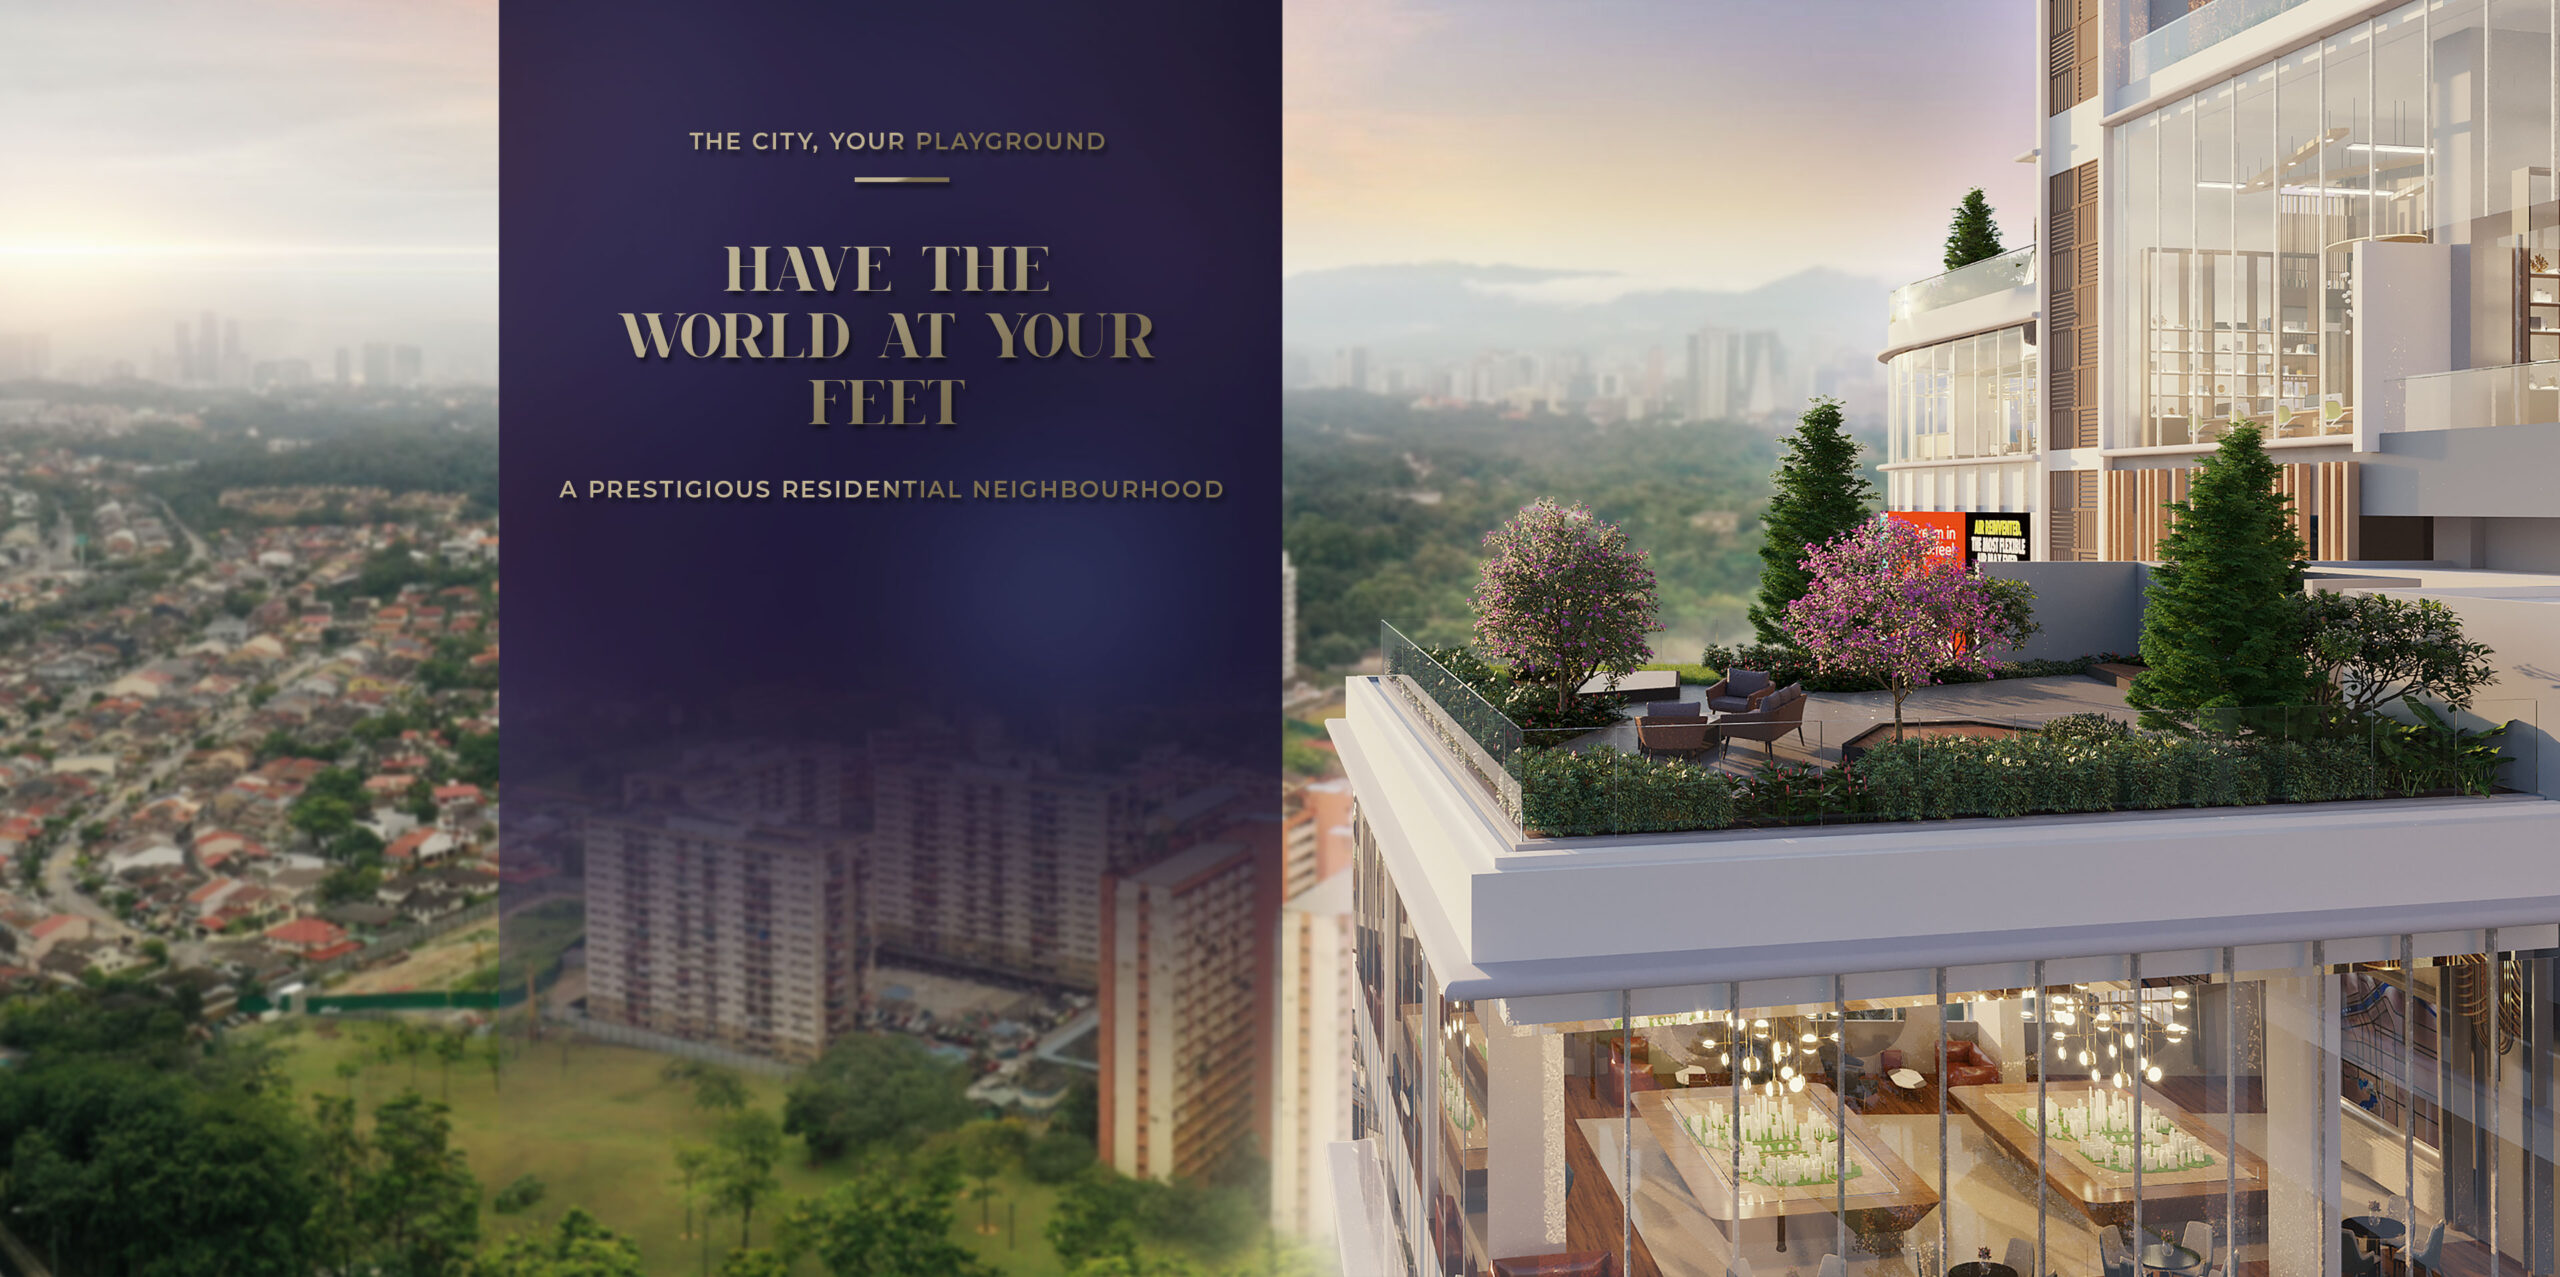 Alfa Bangsar's rooftop garden with text: The city, your playground. Have the world at your feet. A prestigious residential neighbourhood.